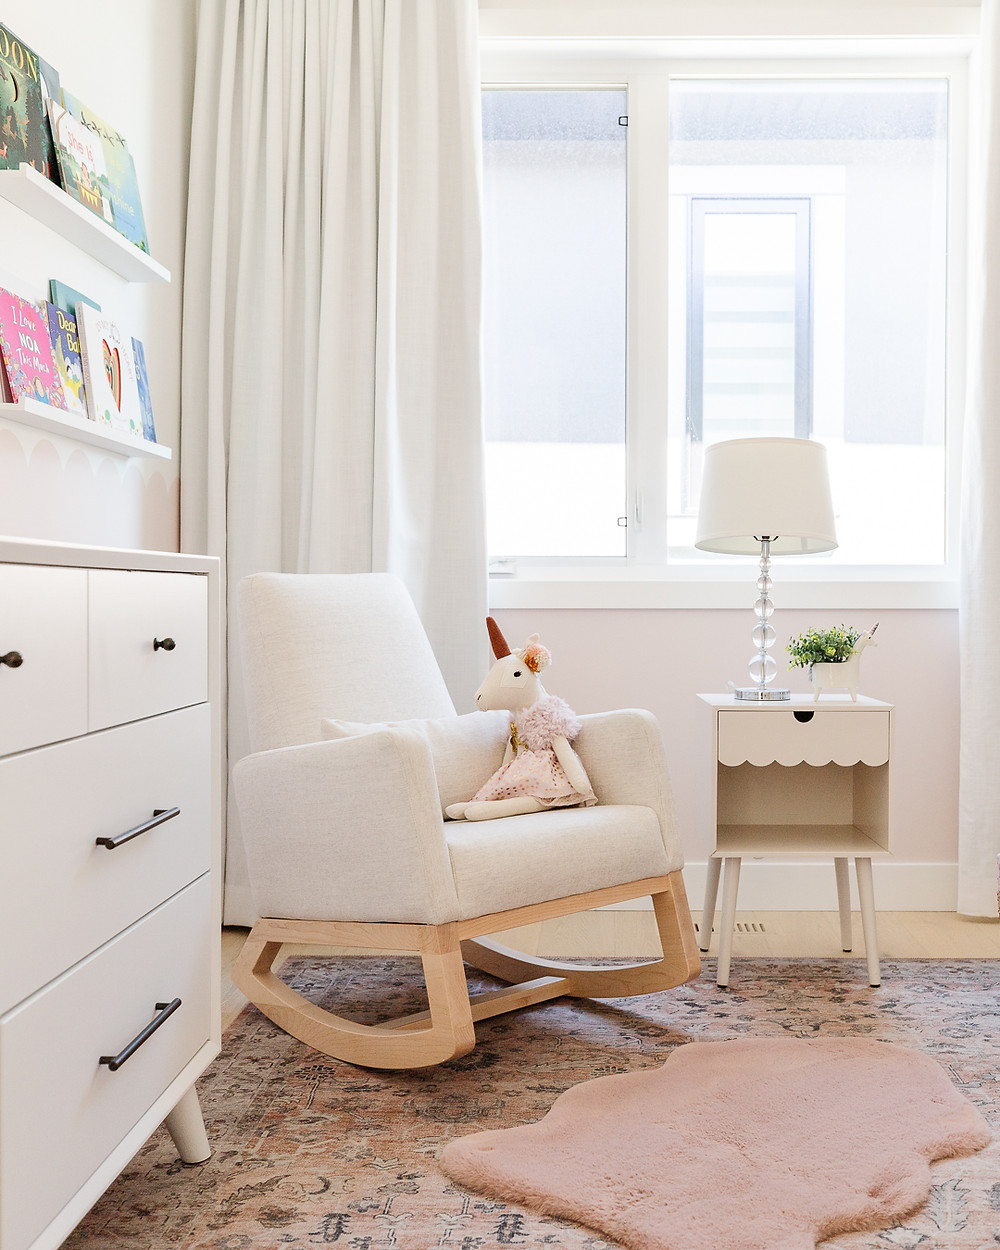 A boho modern baby girls nursery with a blush pink rug a white monte designs joya rocking chair and a scalloped pink wall behind white drapery.